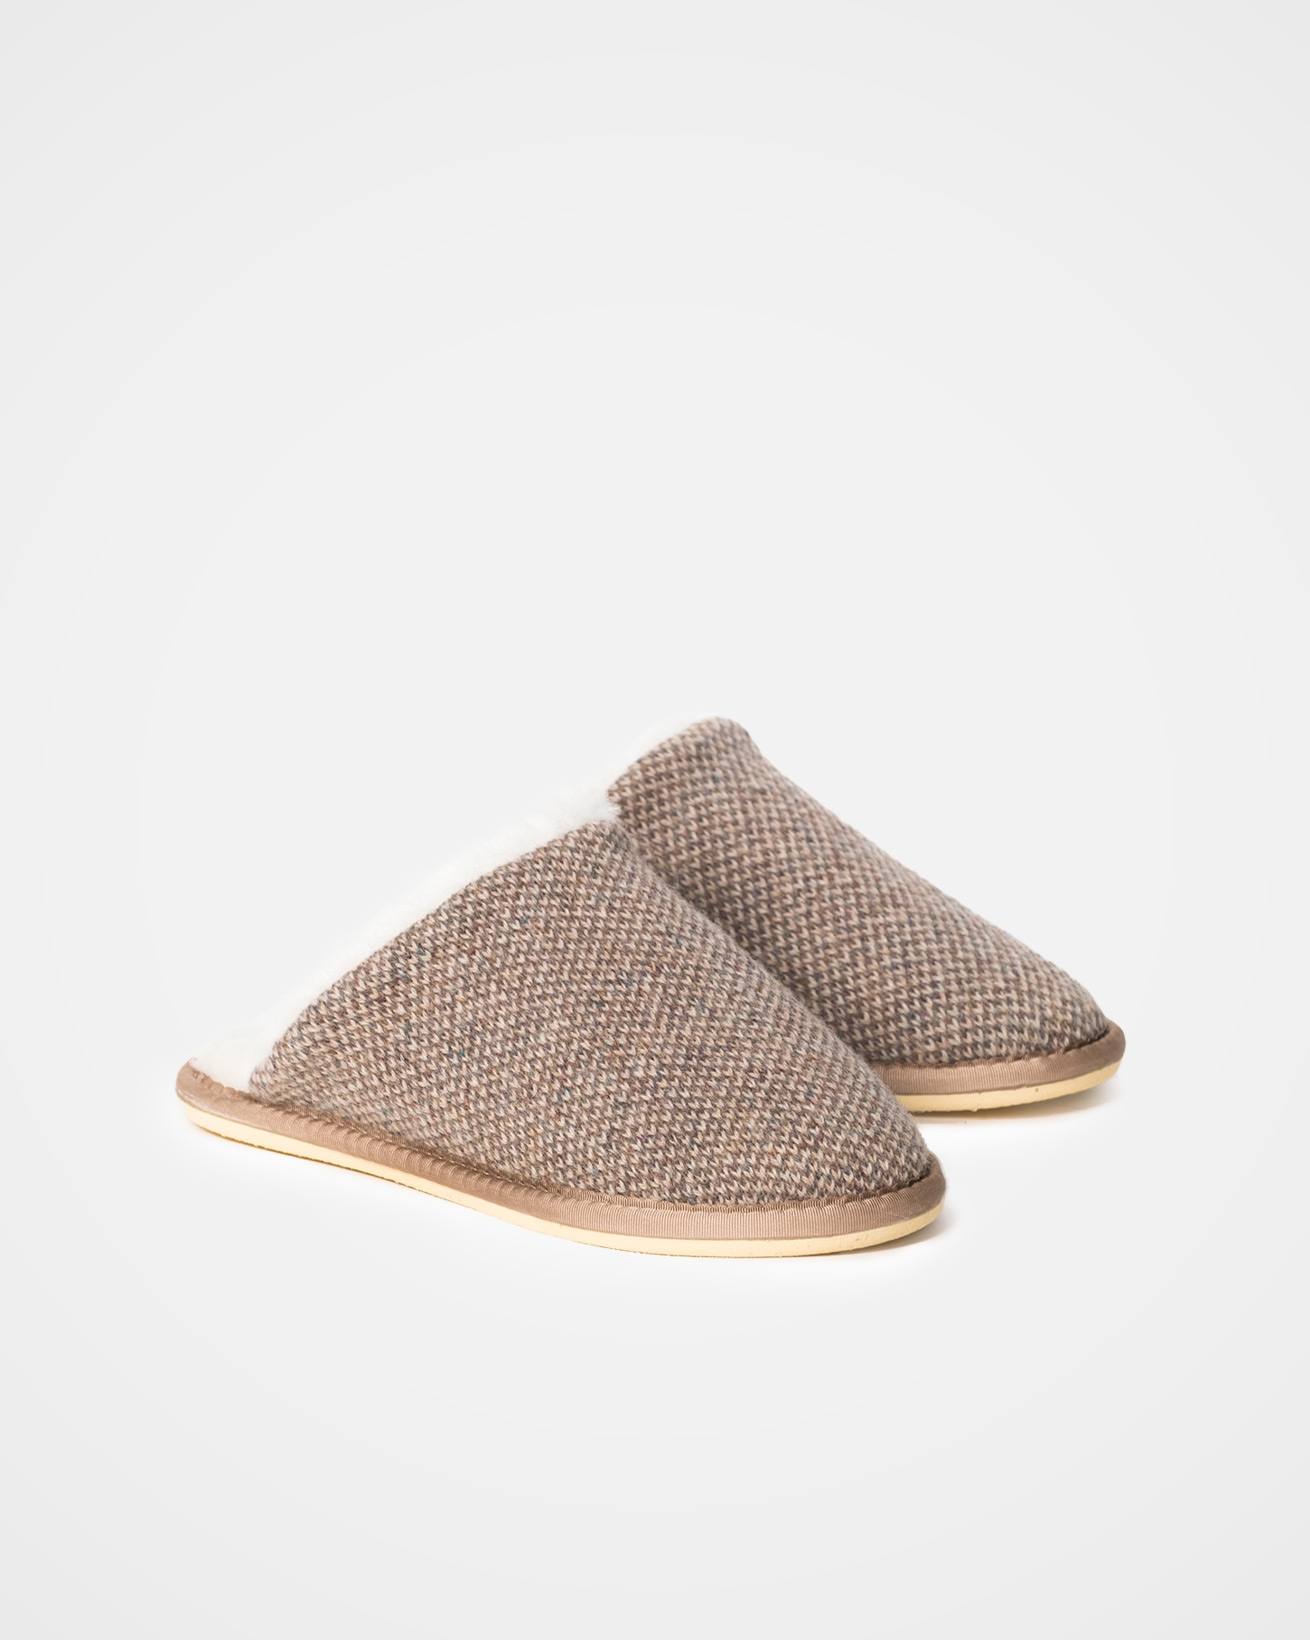 Mens Knitted Mules - Size 11 - Pebble - 989